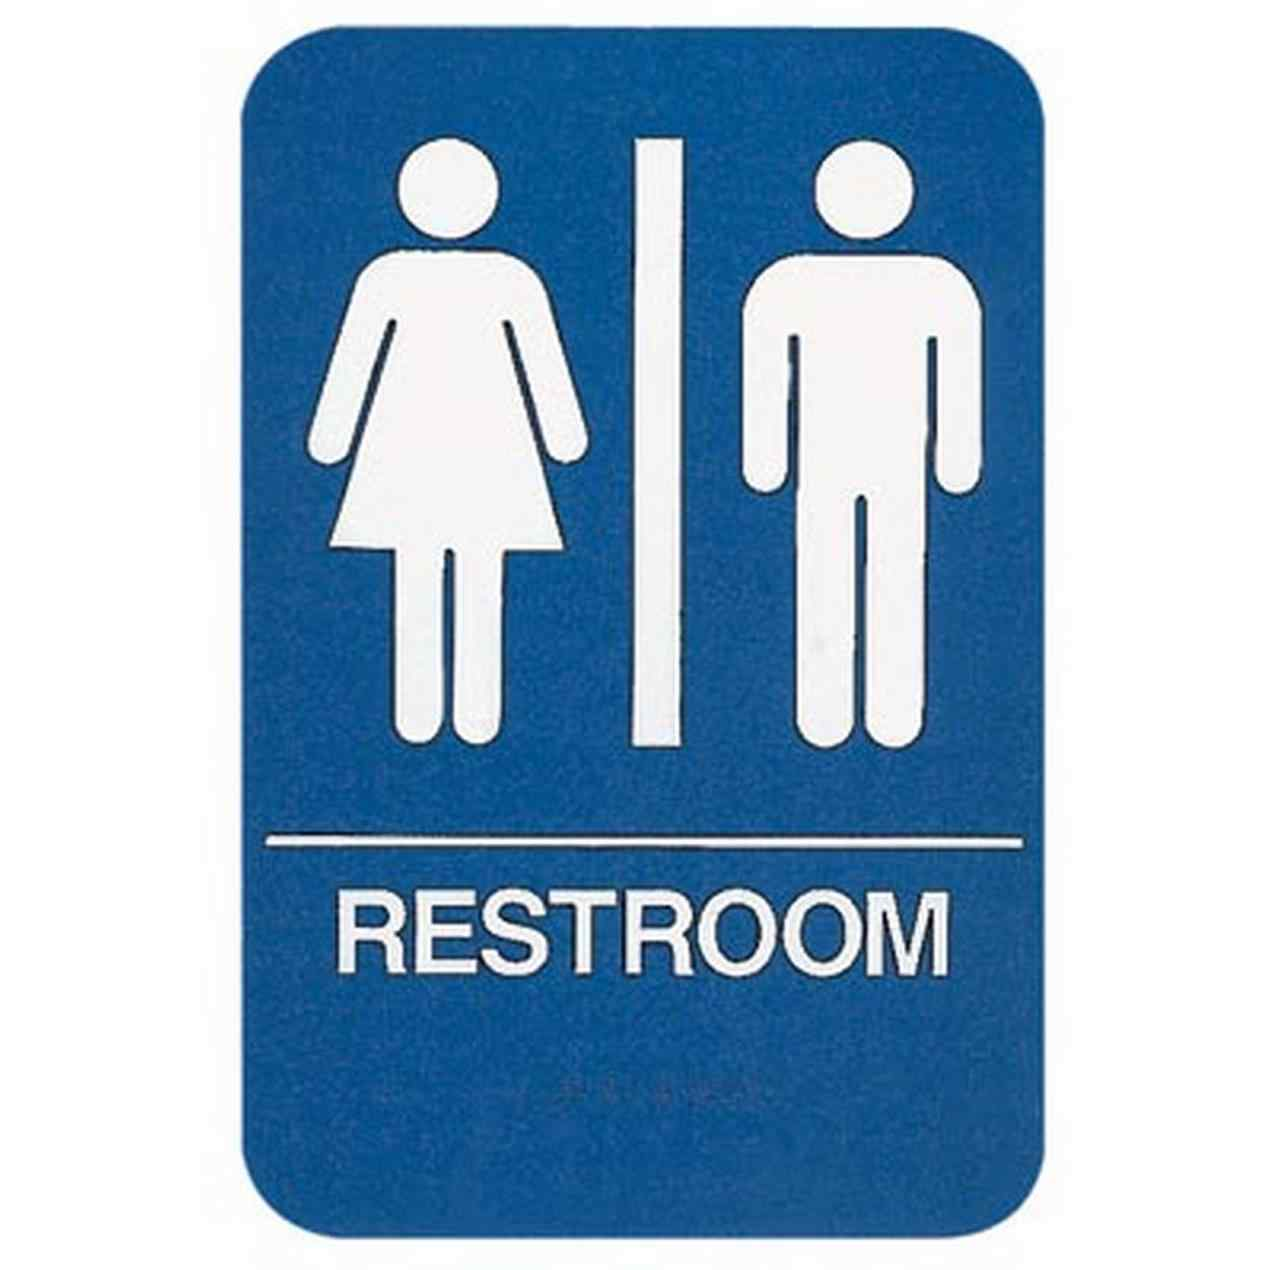 1270x1270 blue mens bathroom sign datenlaborinfo - Mens Bathroom Sign